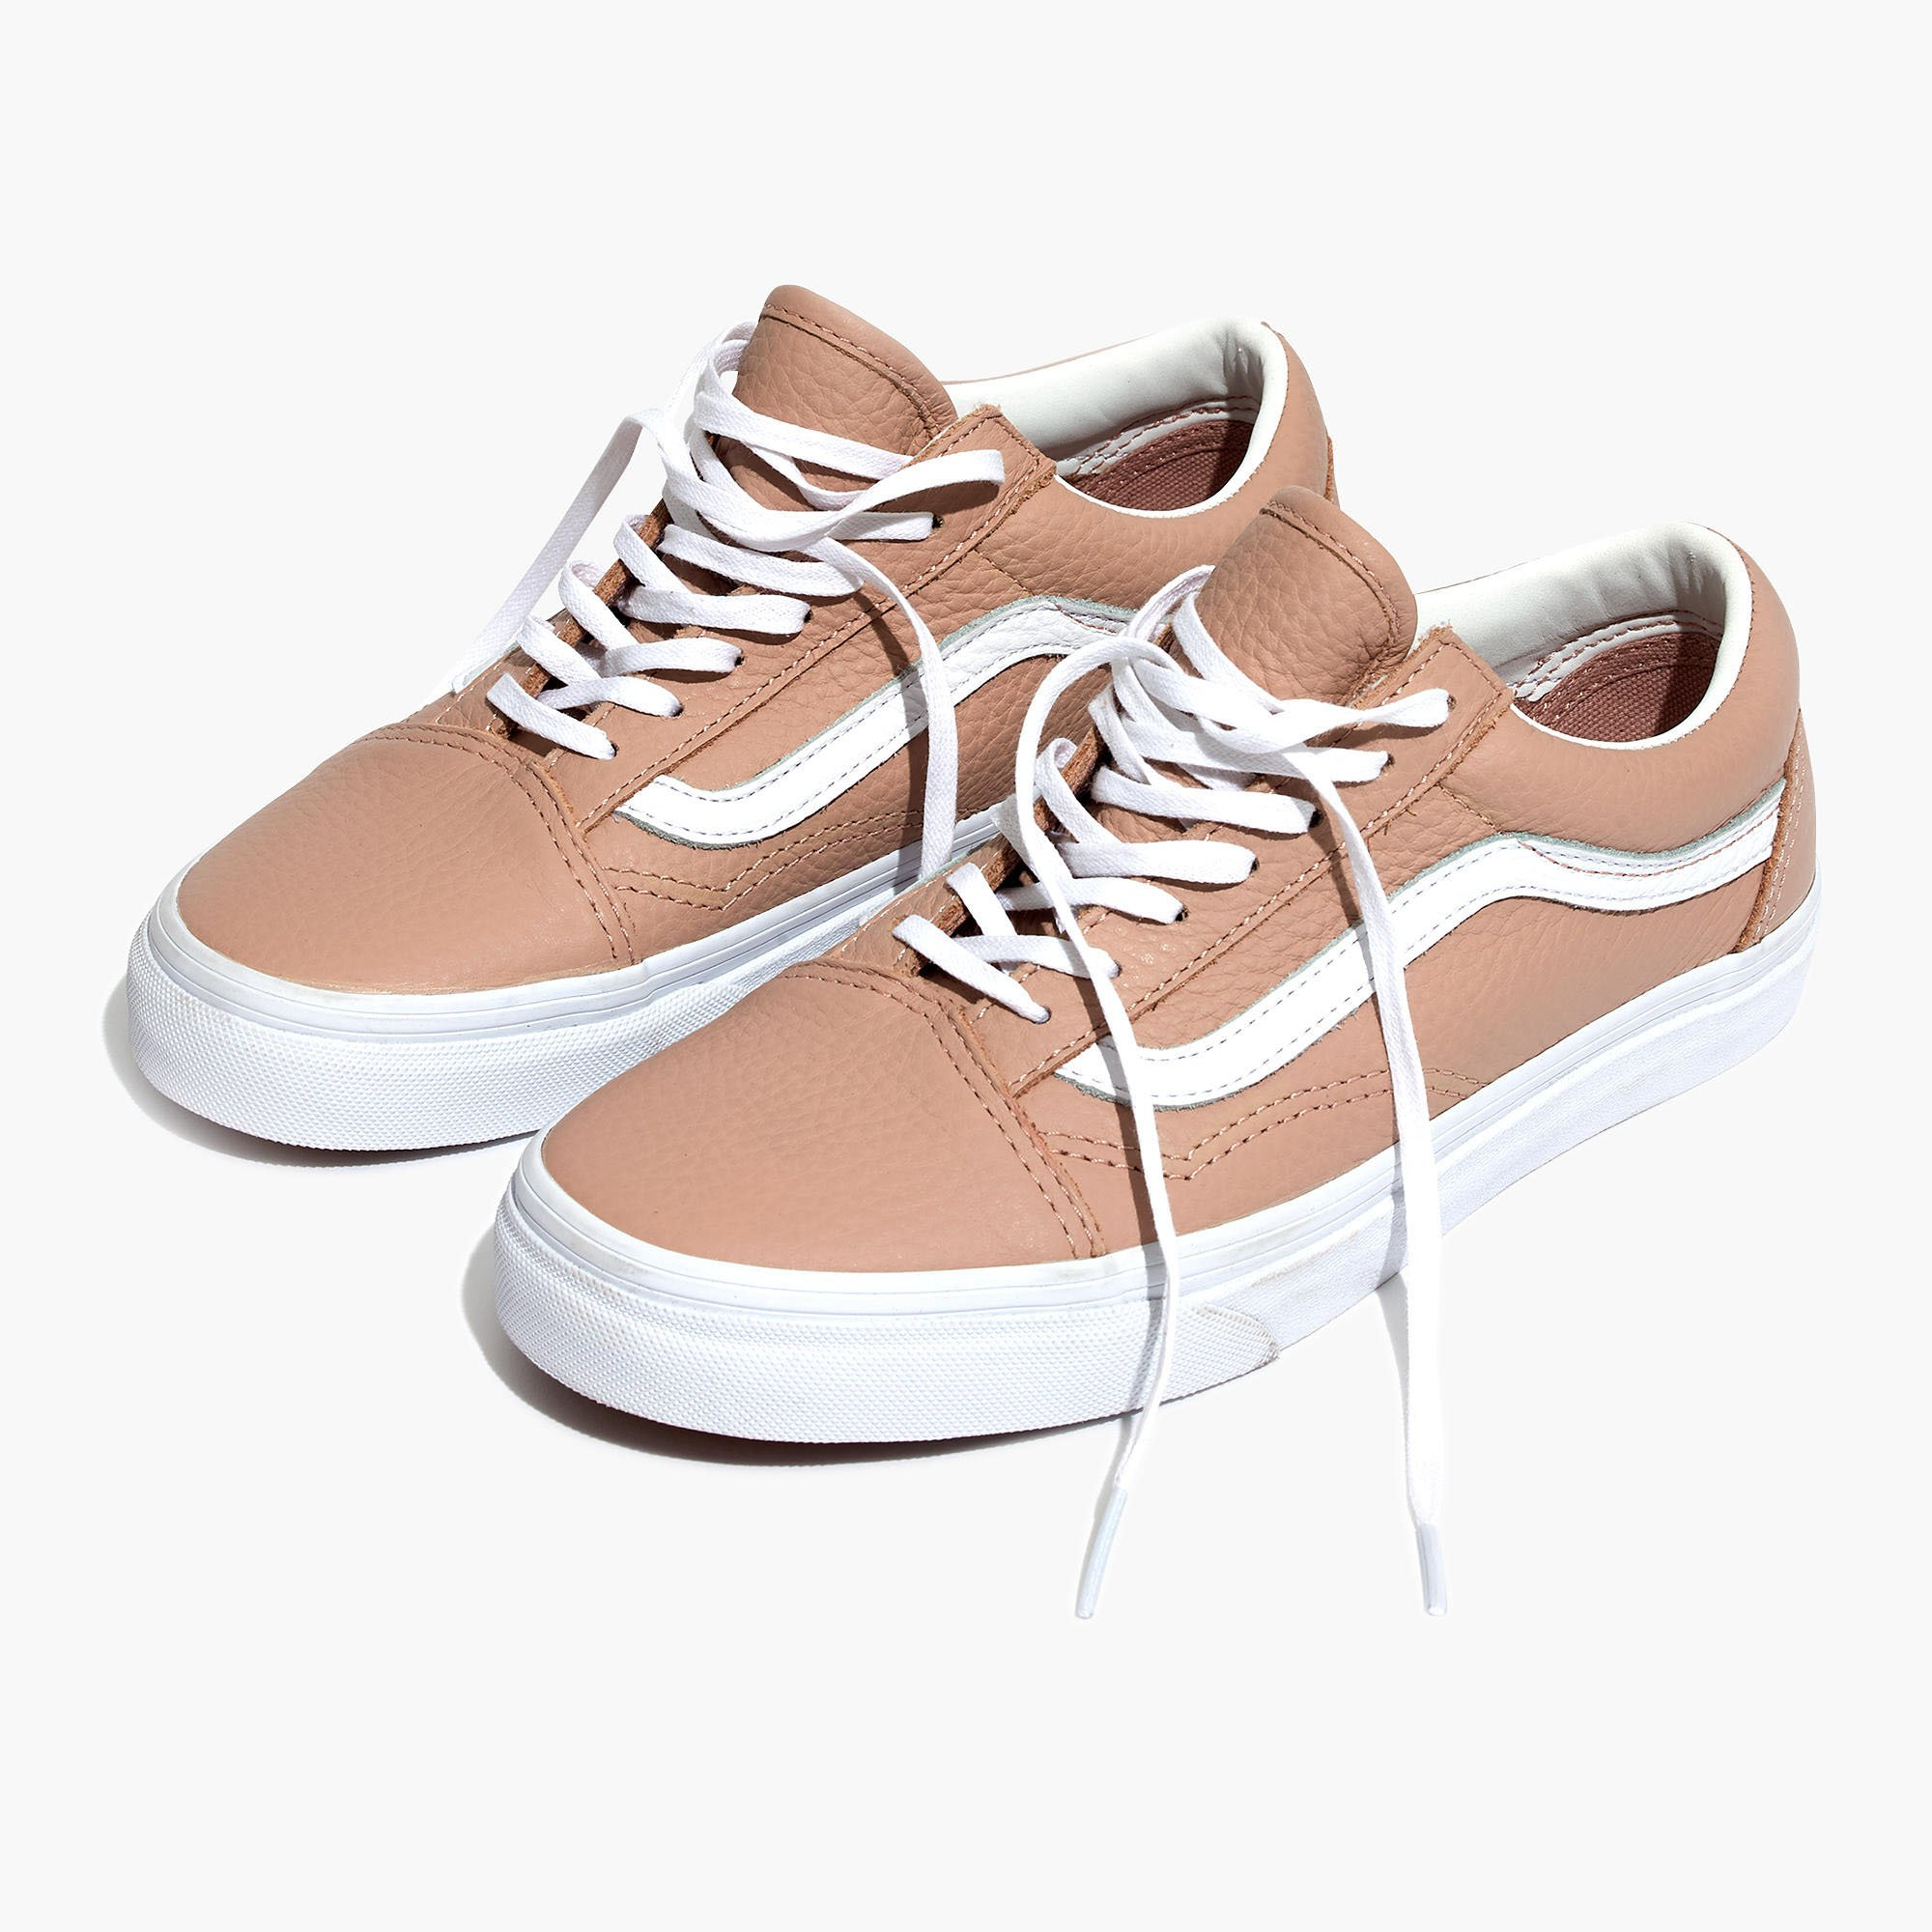 Vans rose leather sneakers